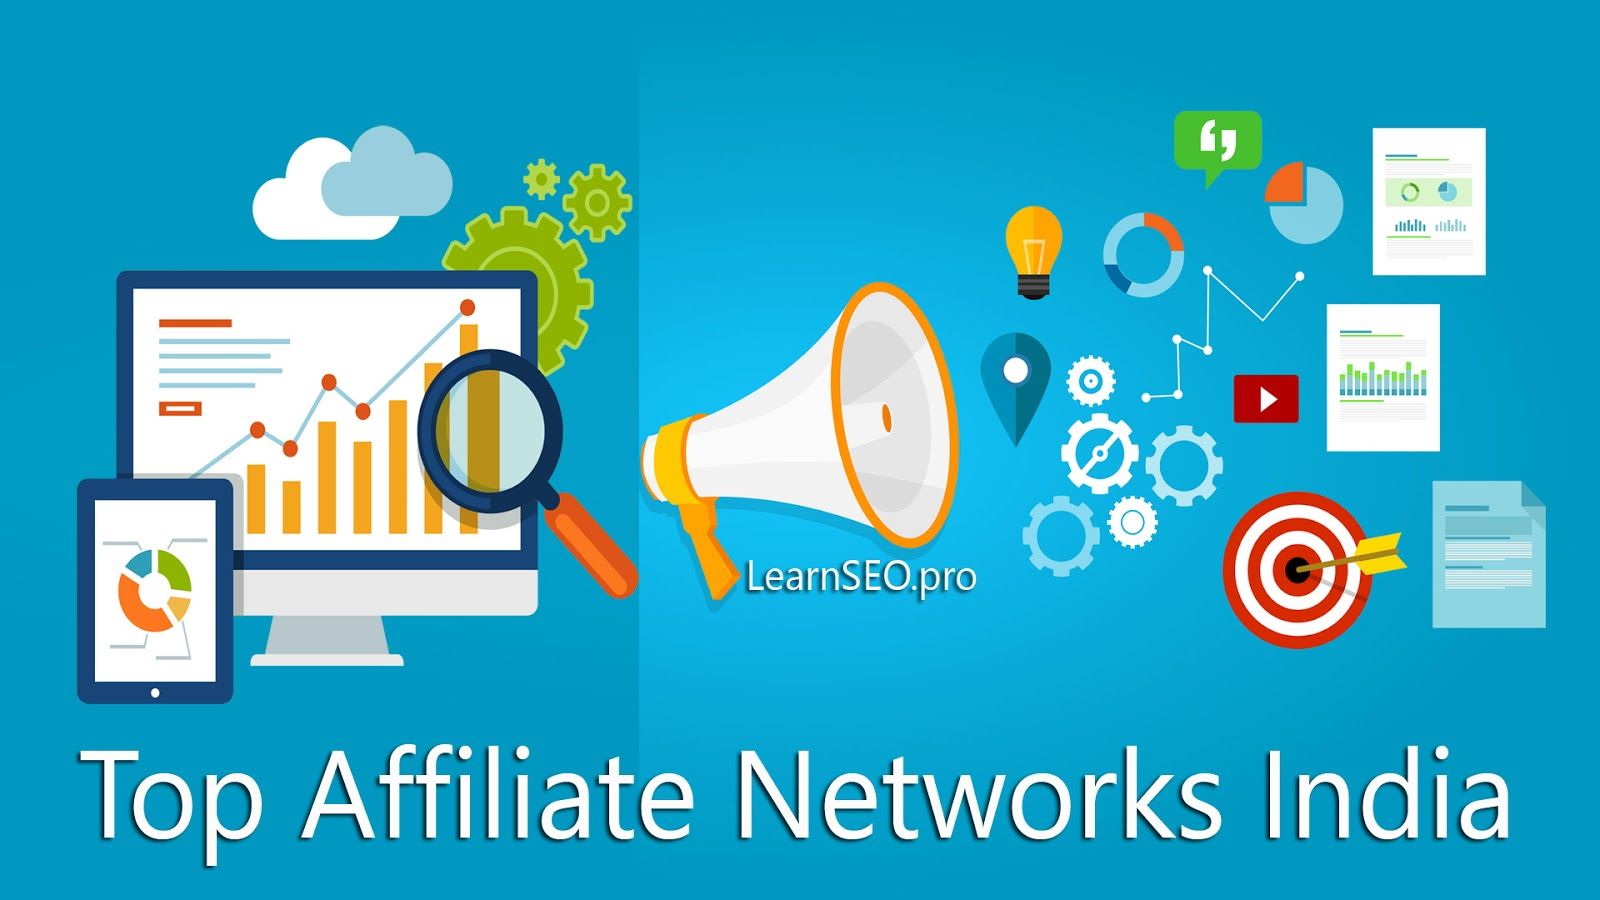 Top Affiliate Networks in India | LearnSEO.pro